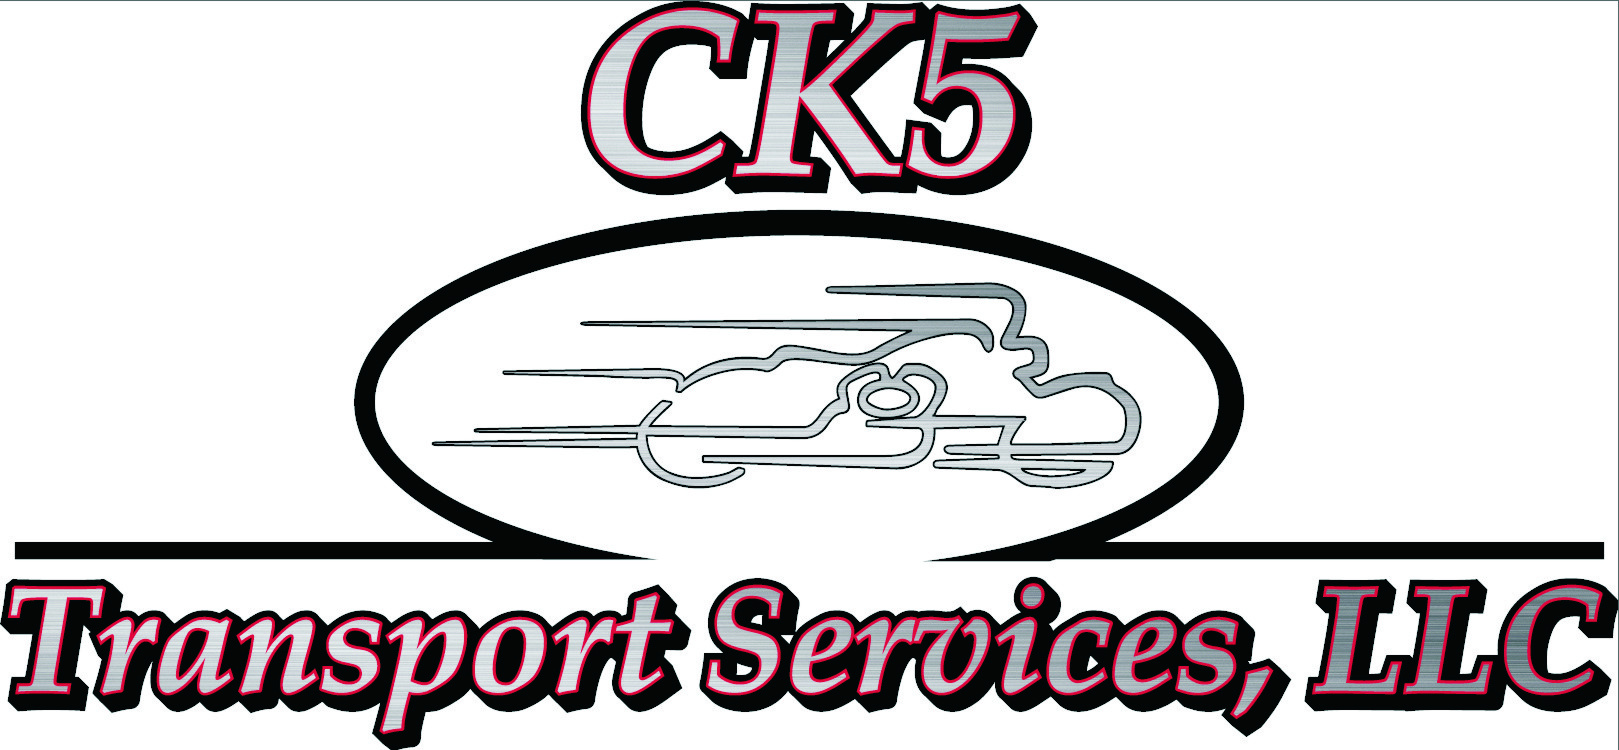 CK5 Transport Services, LLC